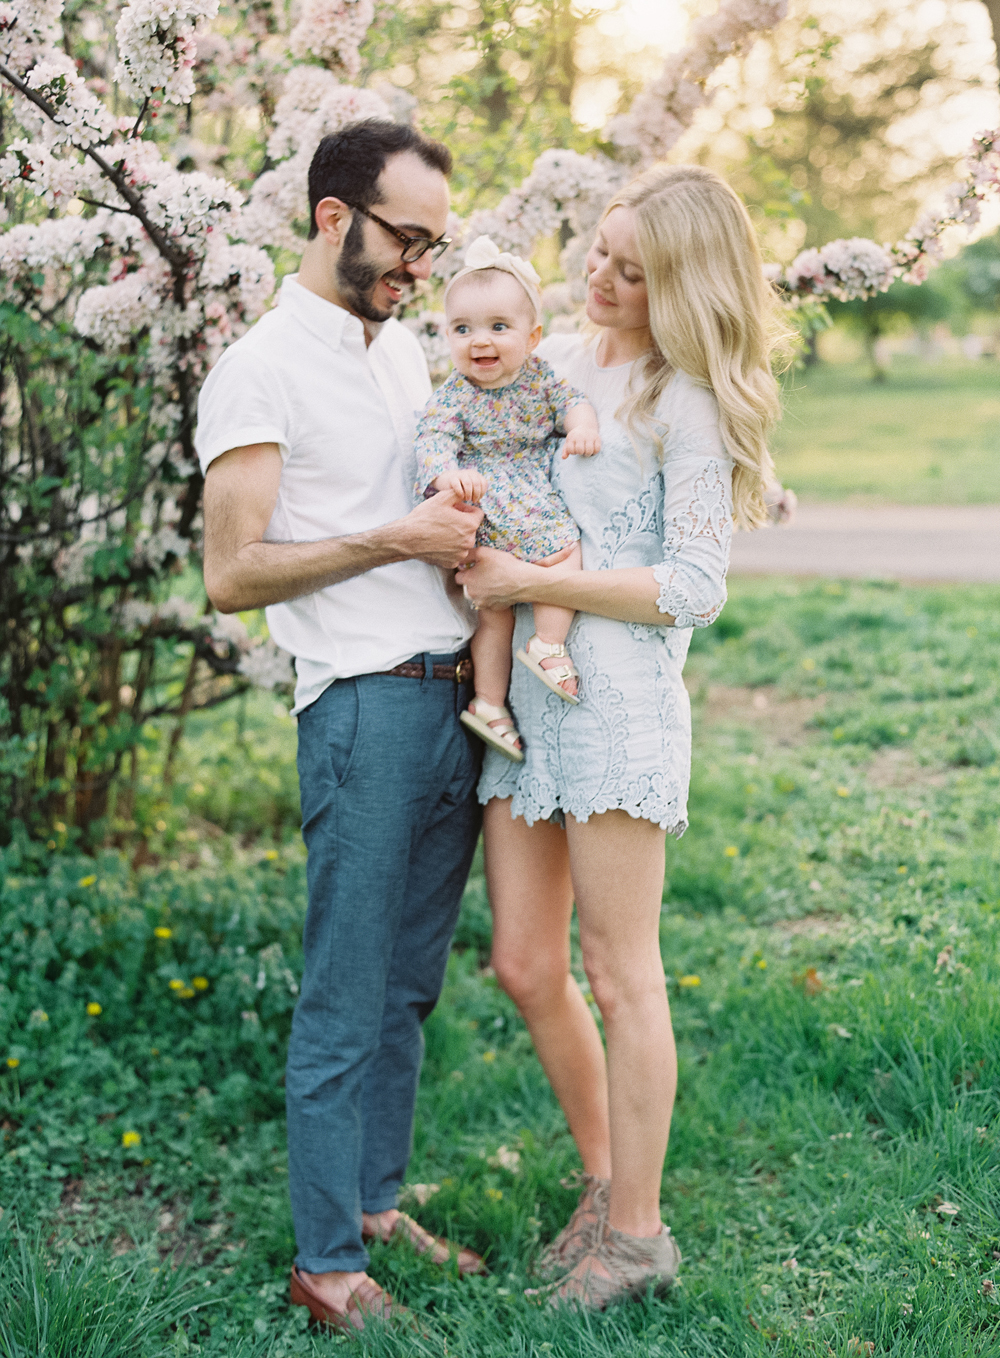 Simple Outdoor Family Portraits | cottagehillmag.com